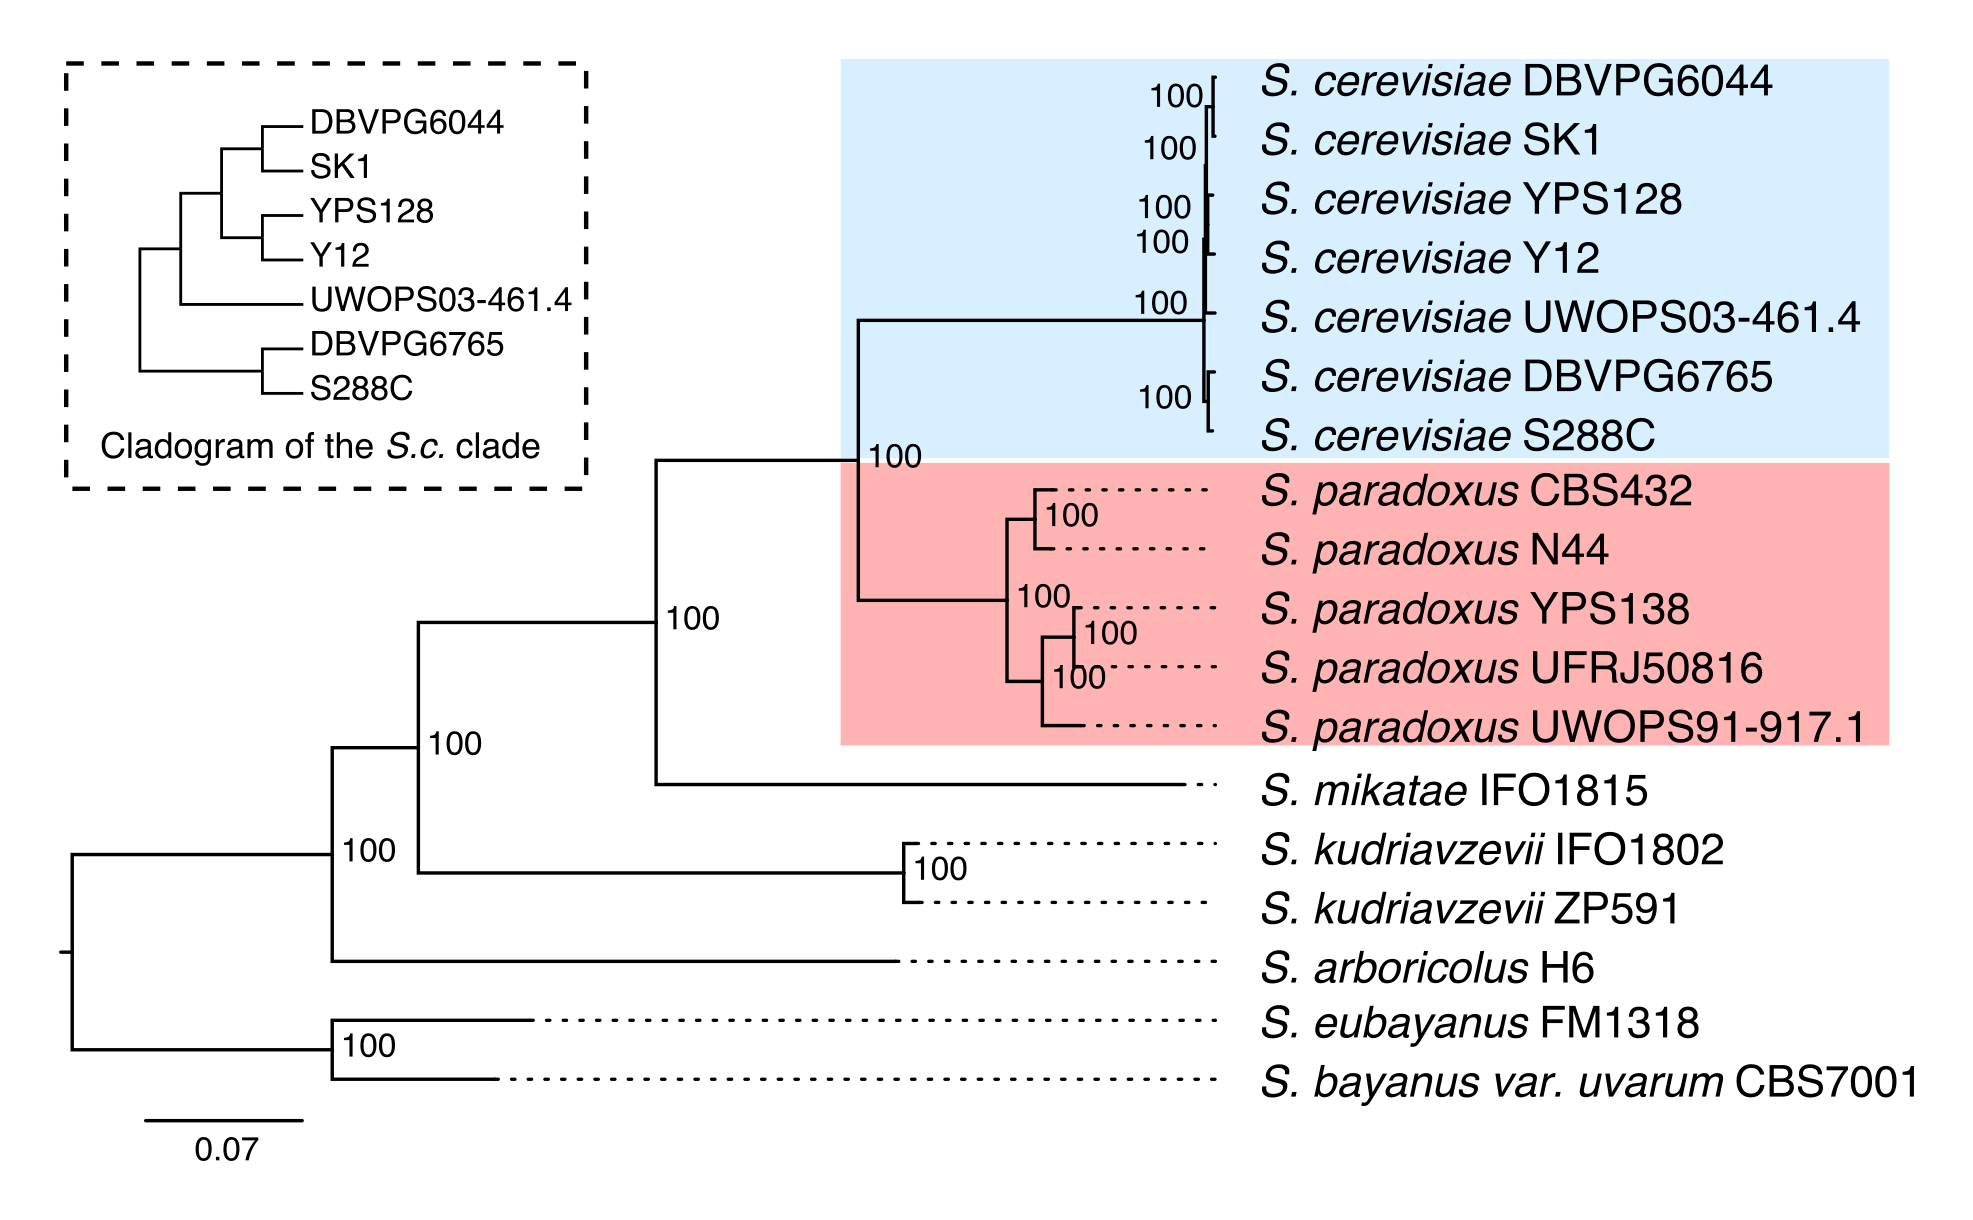 phylogeny of sampled strains